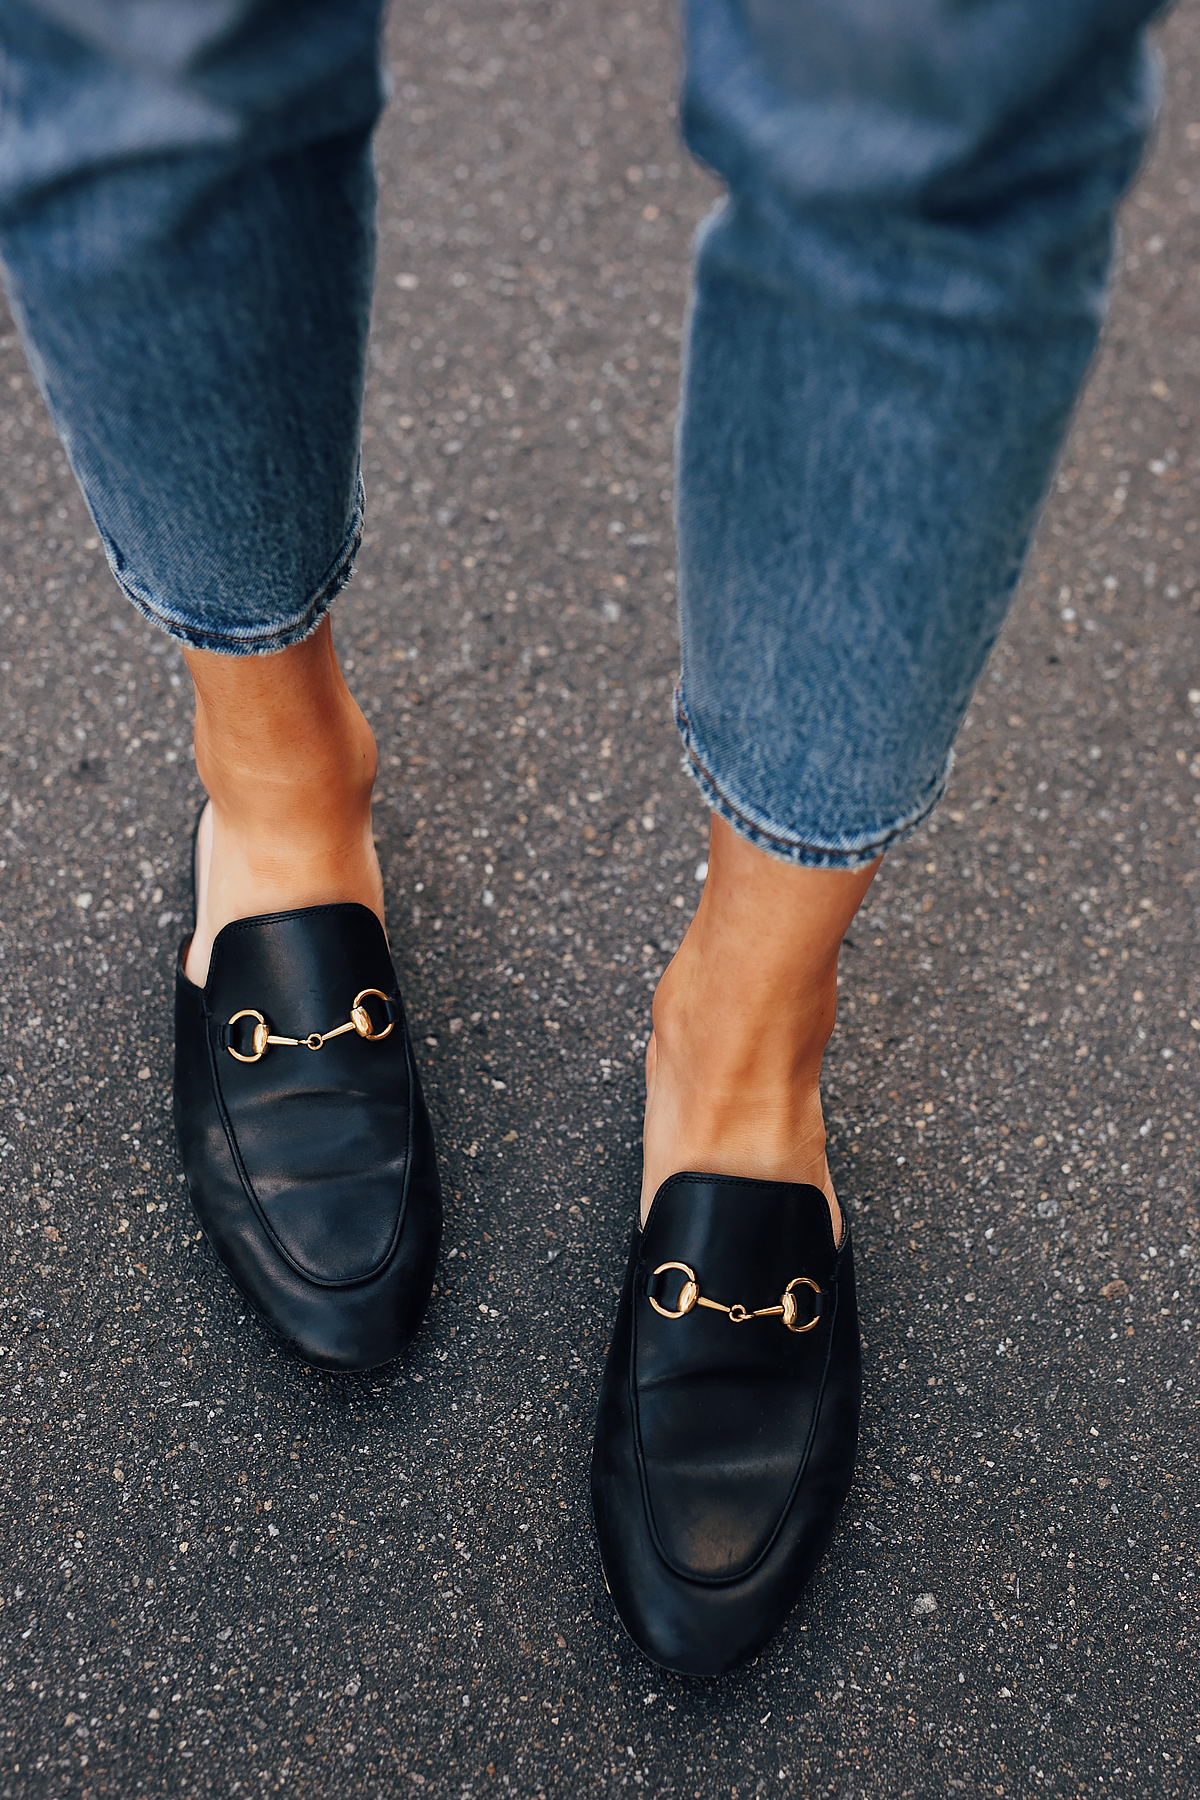 87032c450 Woman Wearing Levis 501 Jeans Gucci Princetown Mules Black Fashion Jackson  San Diego Fashion Blogger Street